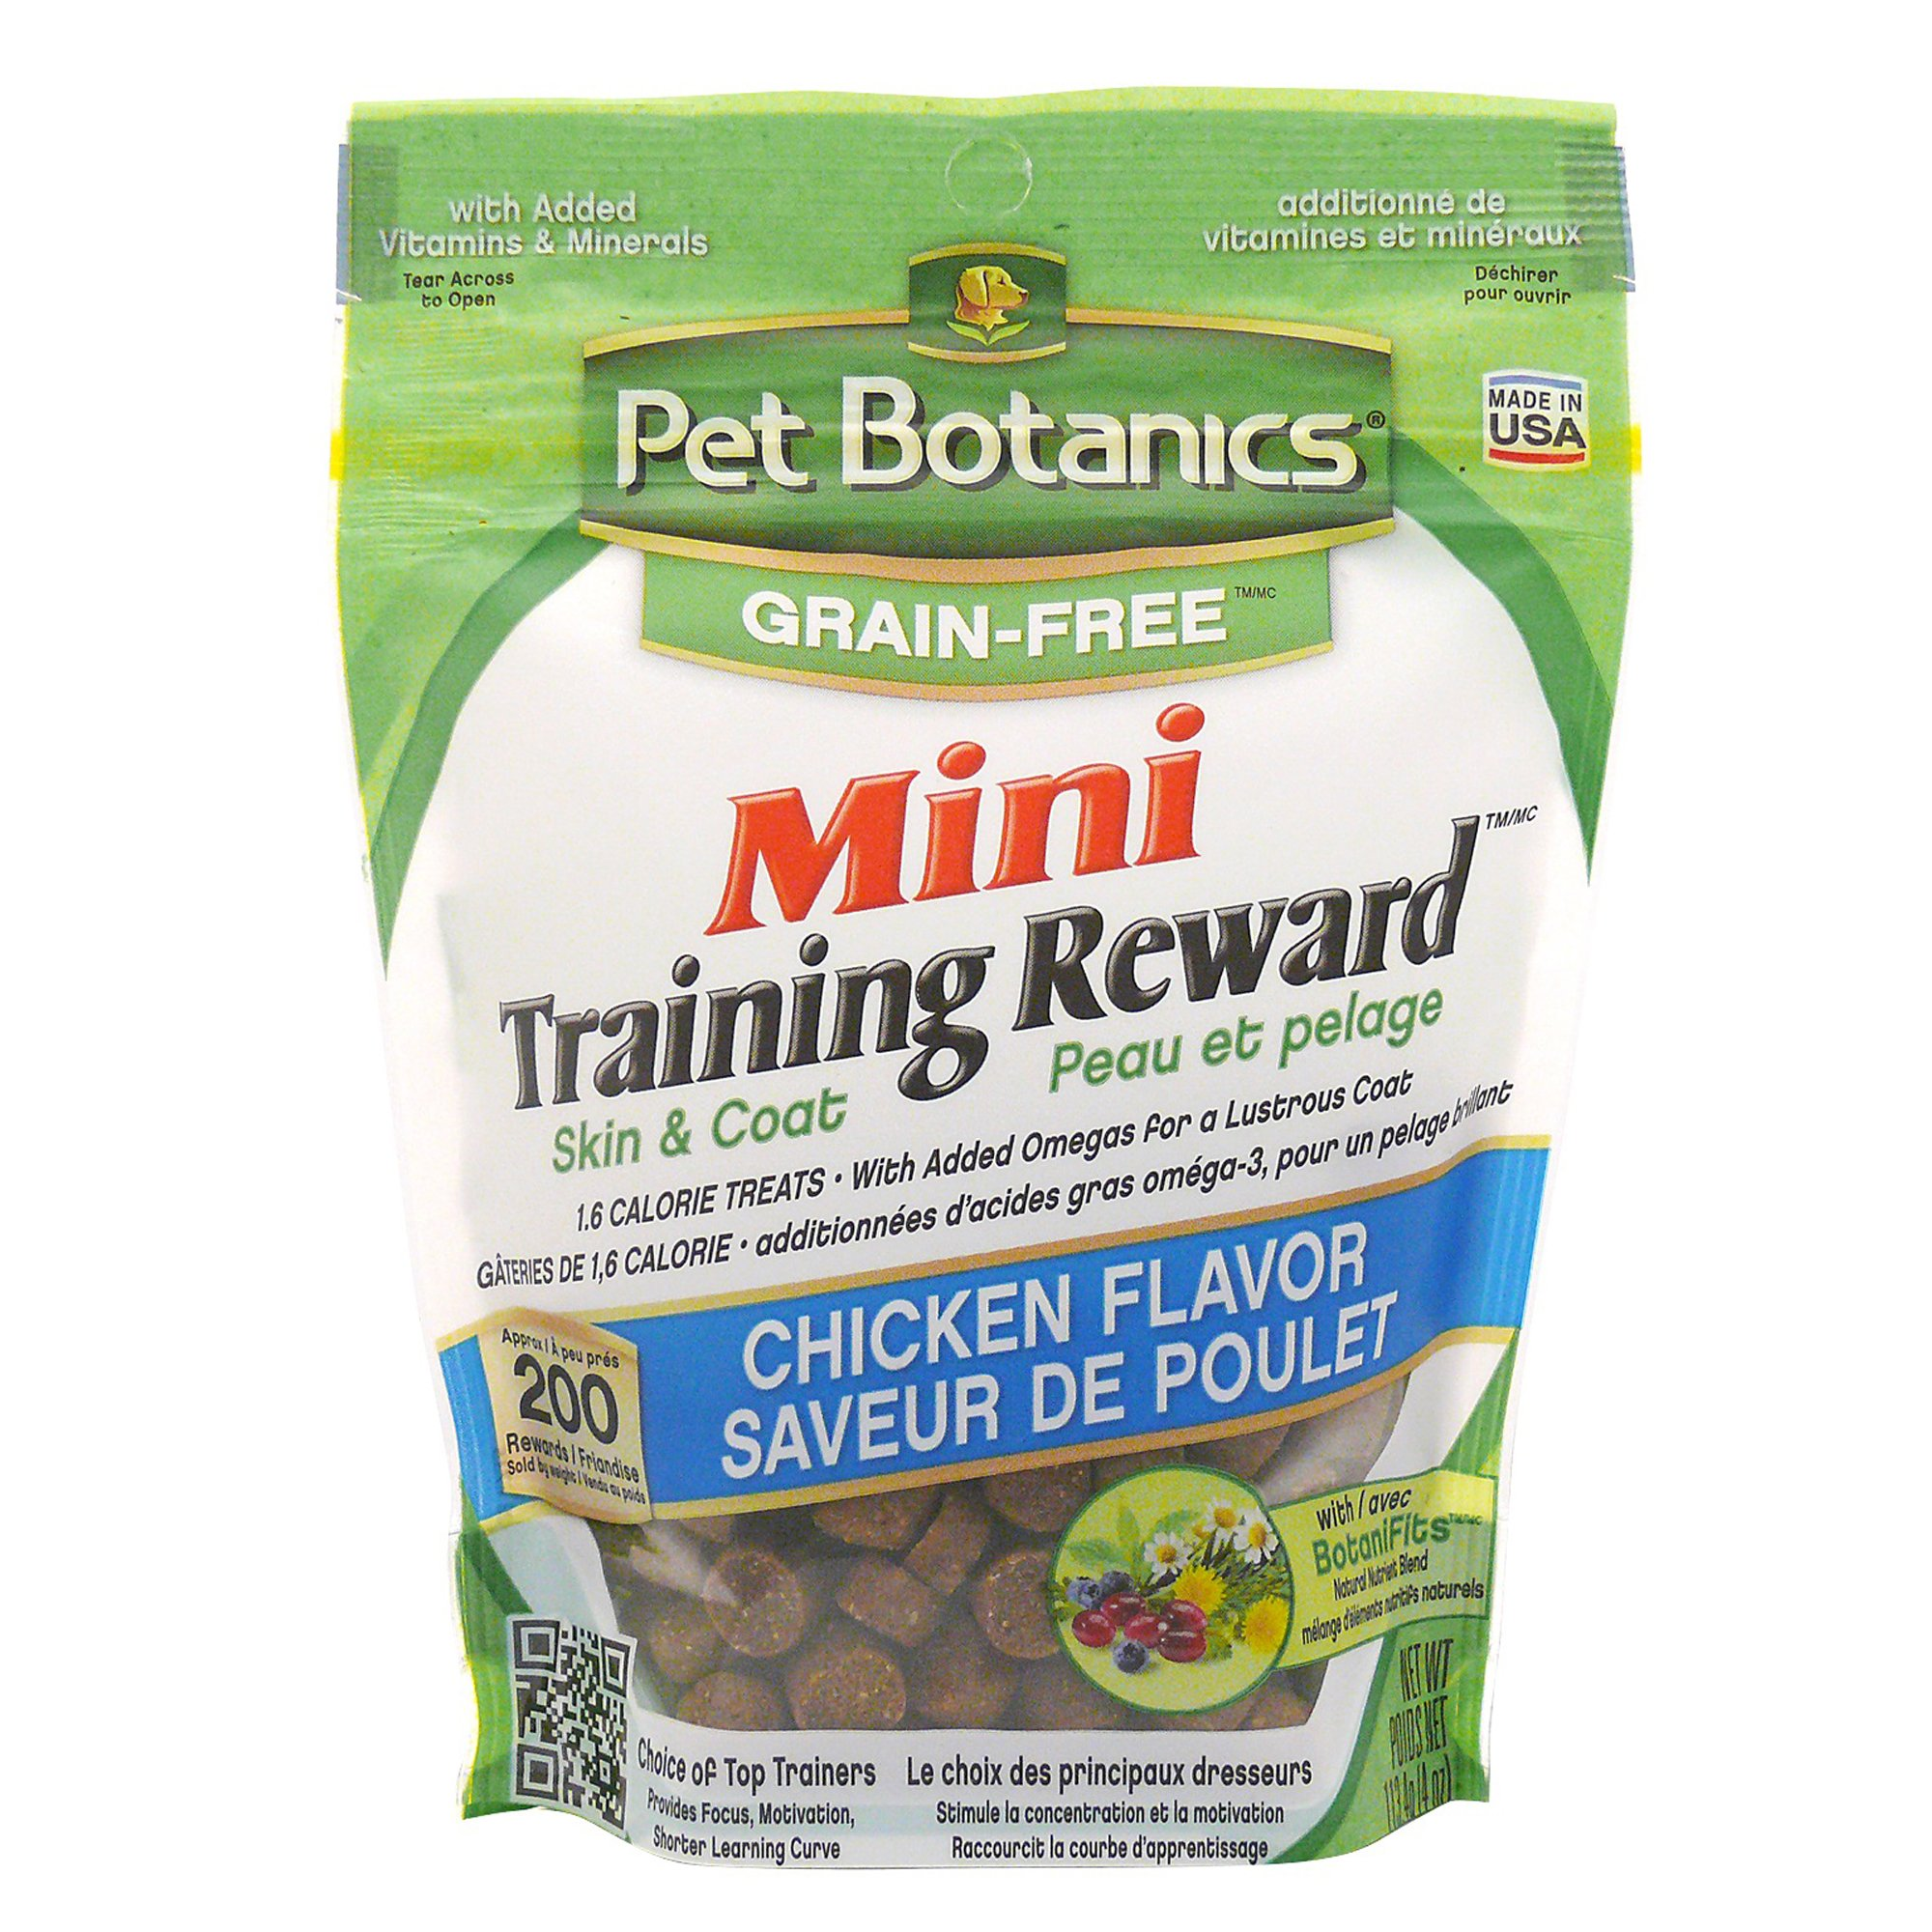 Image of Pet Botanics Grain Free Mini Training Reward Chicken Flavor Dog Treats, 4 oz. bag, 200 count